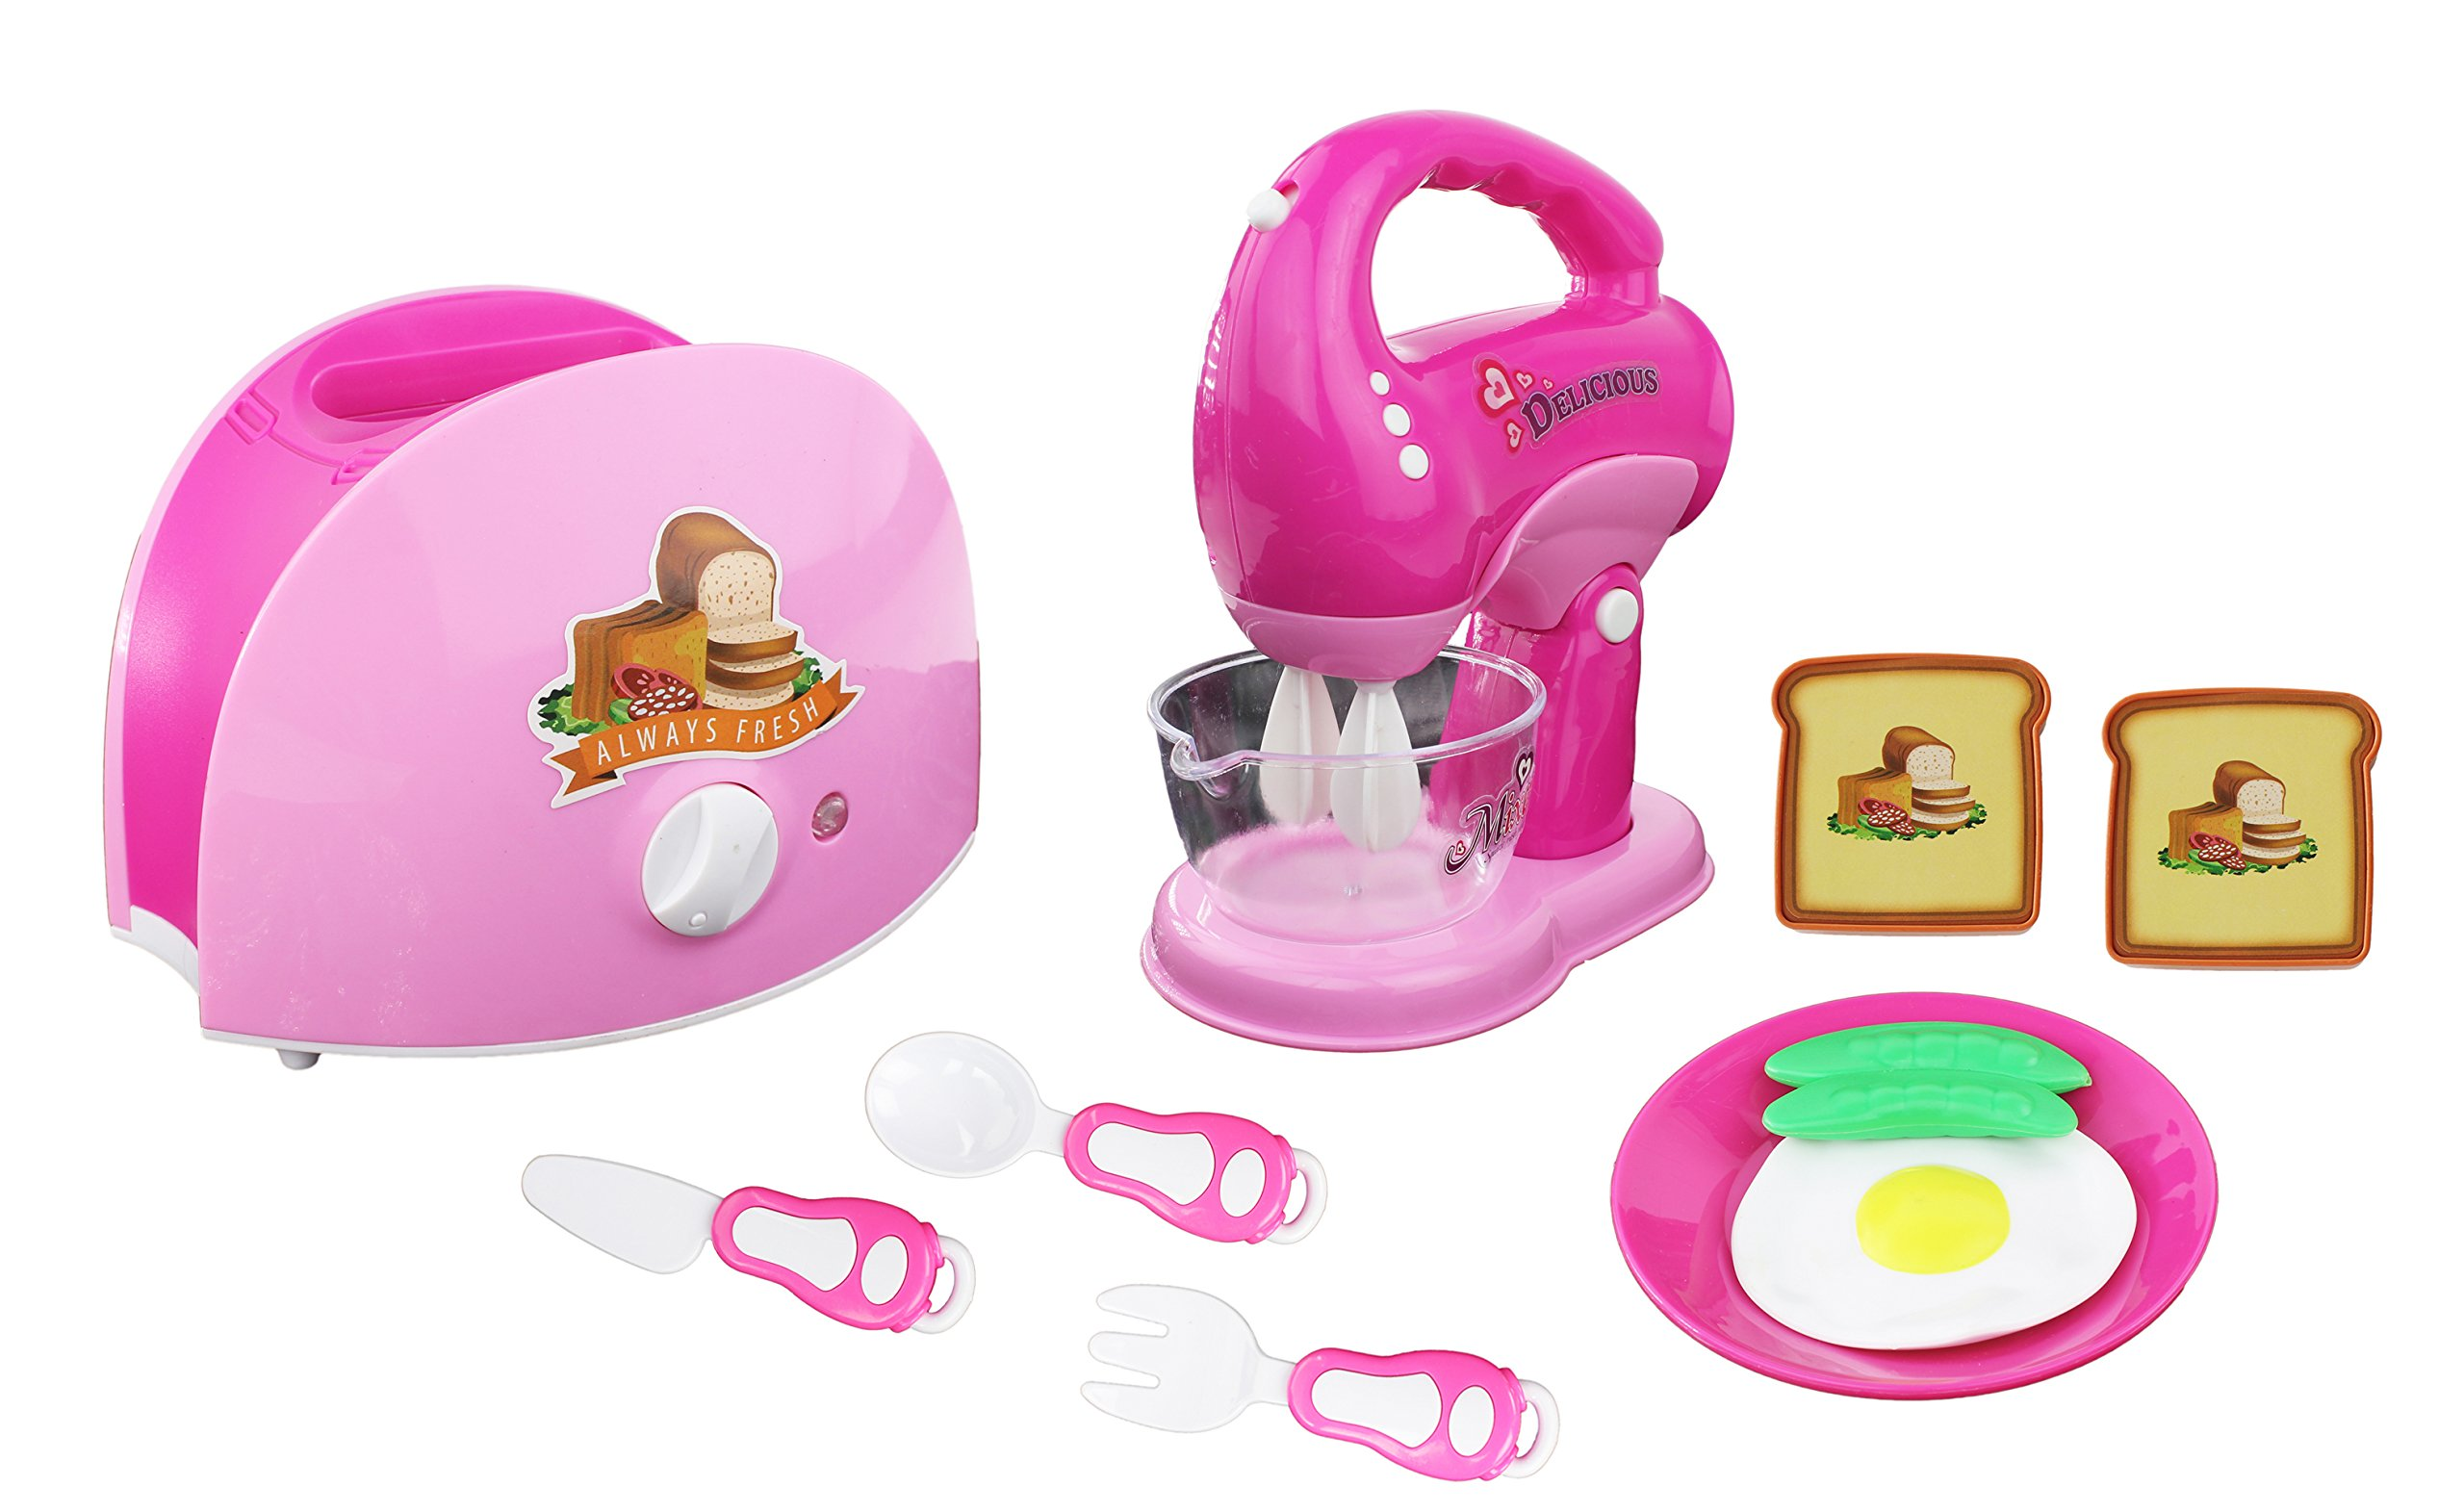 Amazon Com Mini Dream Kitchen Appliance Play Toy Set For Kids Assorted Kitchen Appliance Toys With Blender Toaster Food Play Kitchen Accessories Toys Games